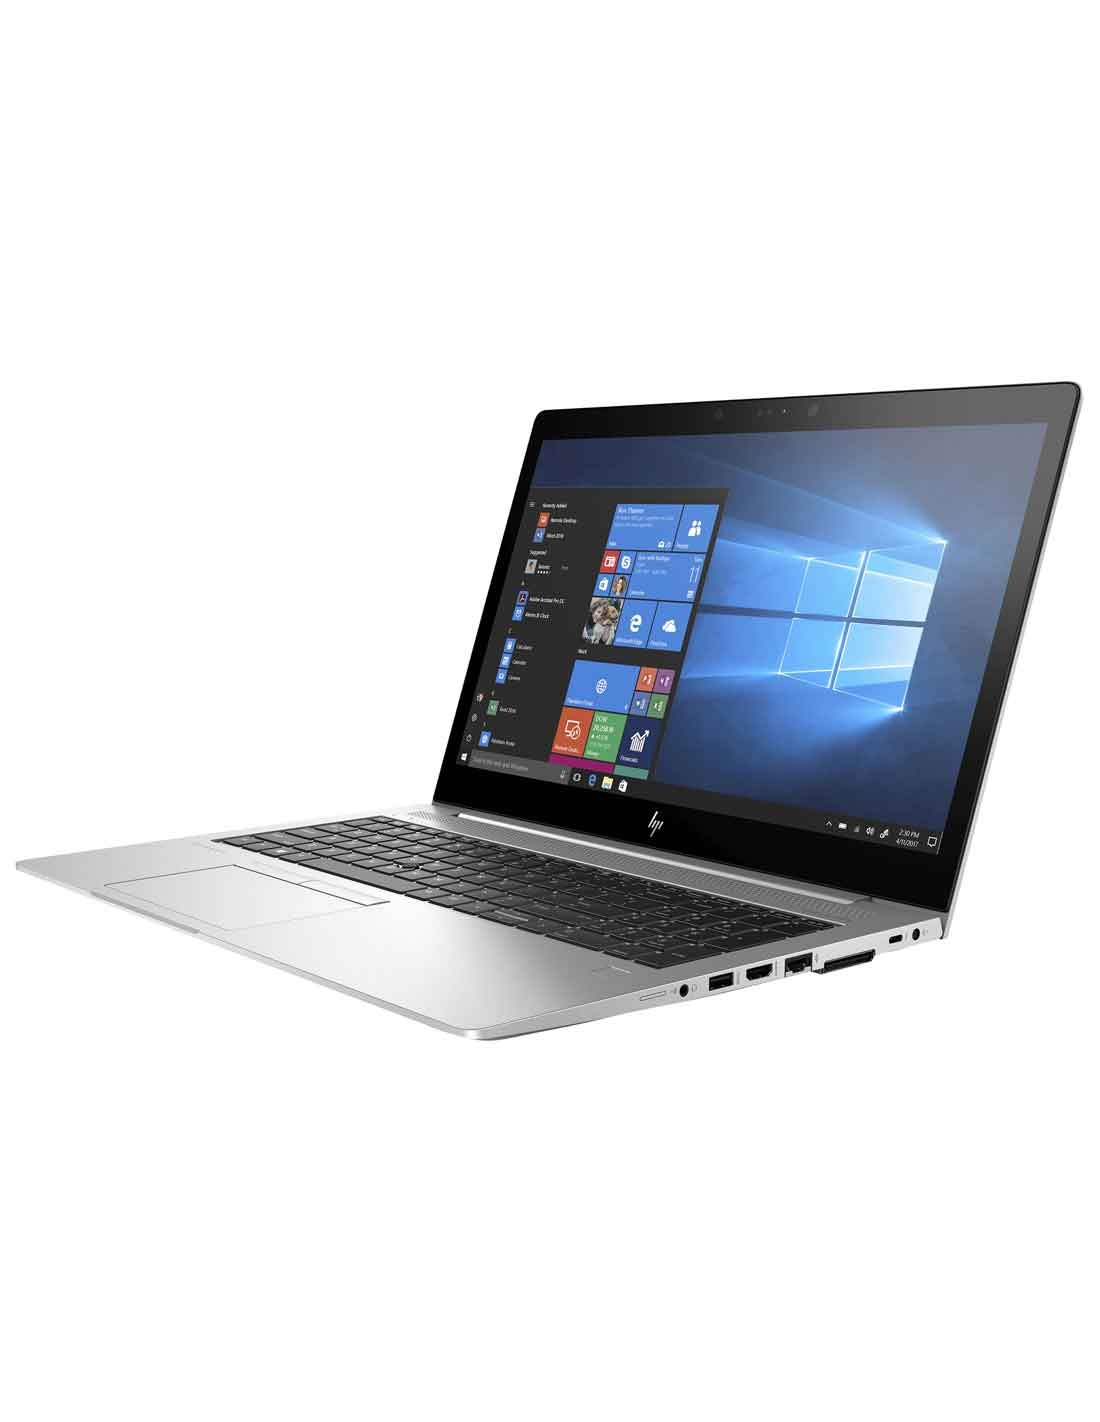 HP EliteBook 850 G5 Notebook 16GB images and photos